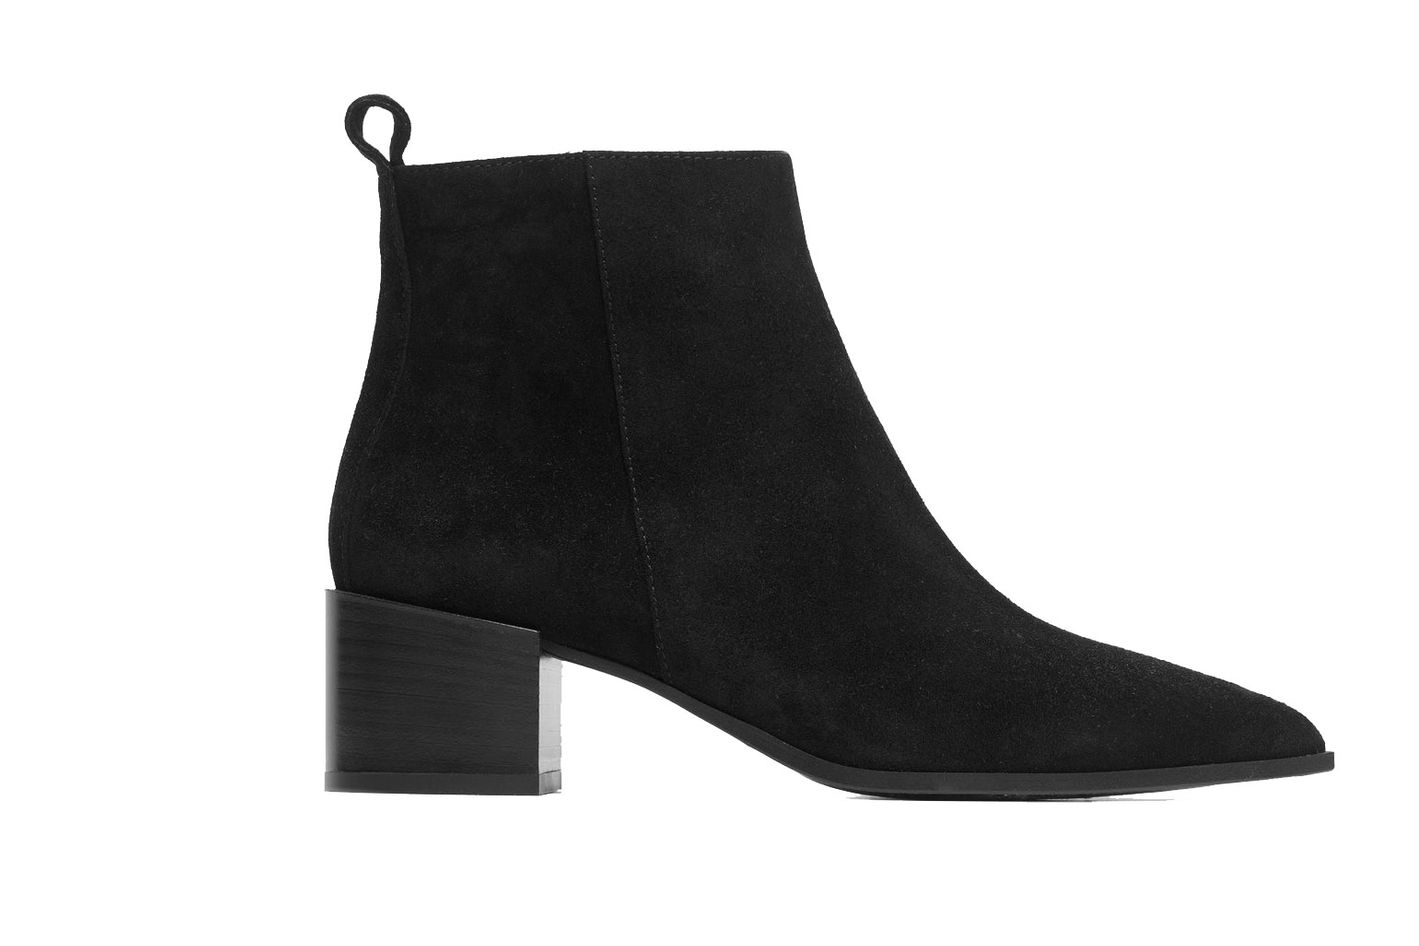 Everlane The Boss Boot in Black Suede